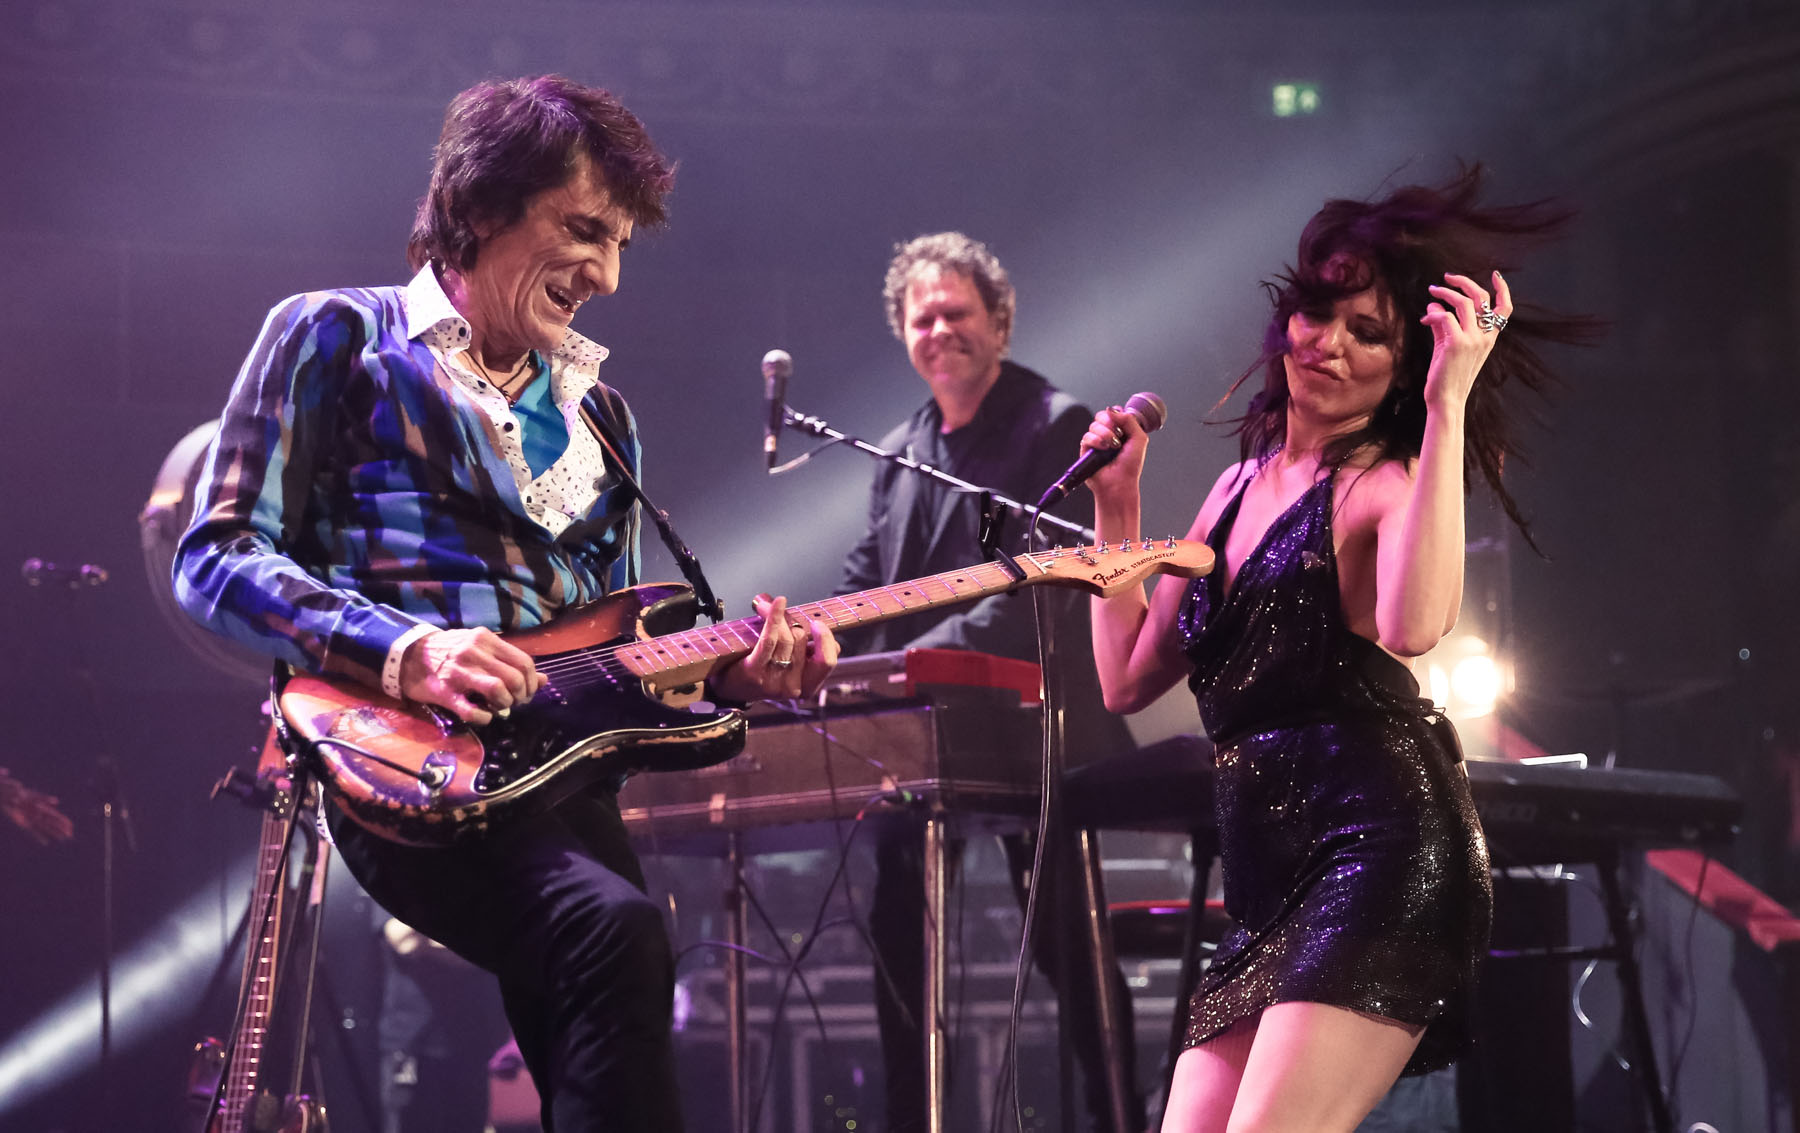 Ronnie Wood and Imelda May at the Royal Albert Hall by Christie Goodwin